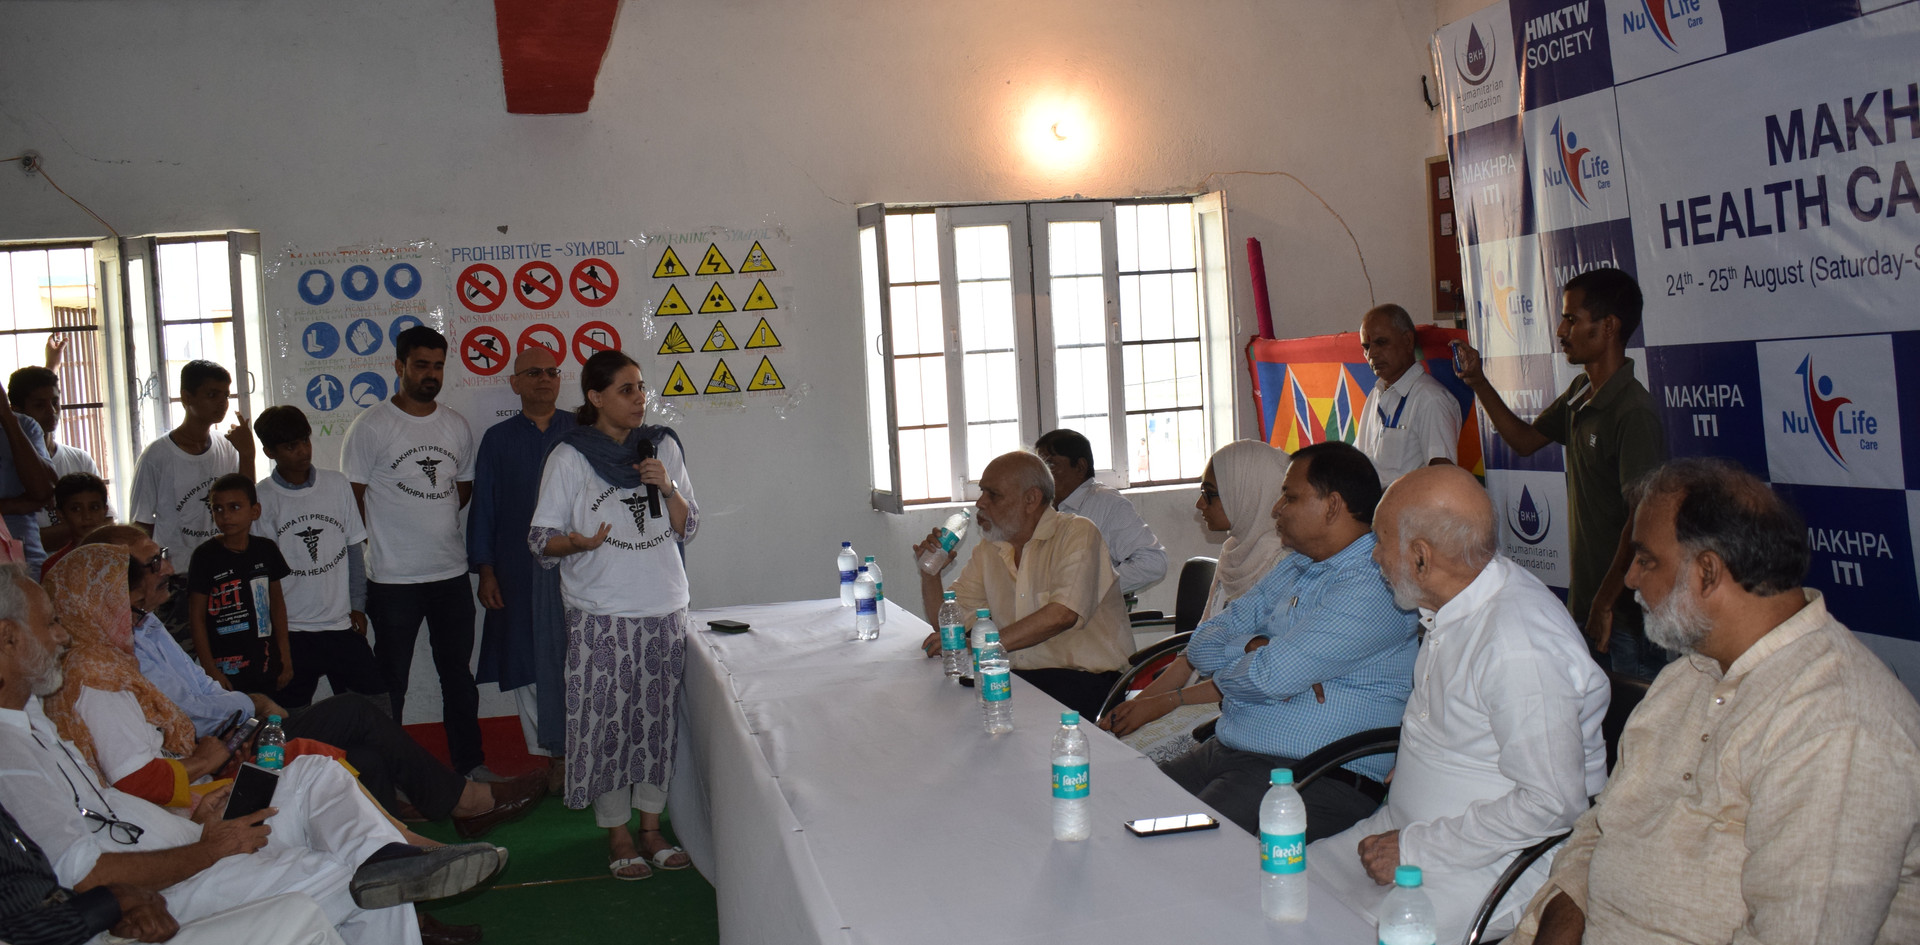 We invited prominent and powerful people from surrounding areas. We used this opportunity to discuss ways that we could better the quality of life for these villagers who are living in harsh poverty.